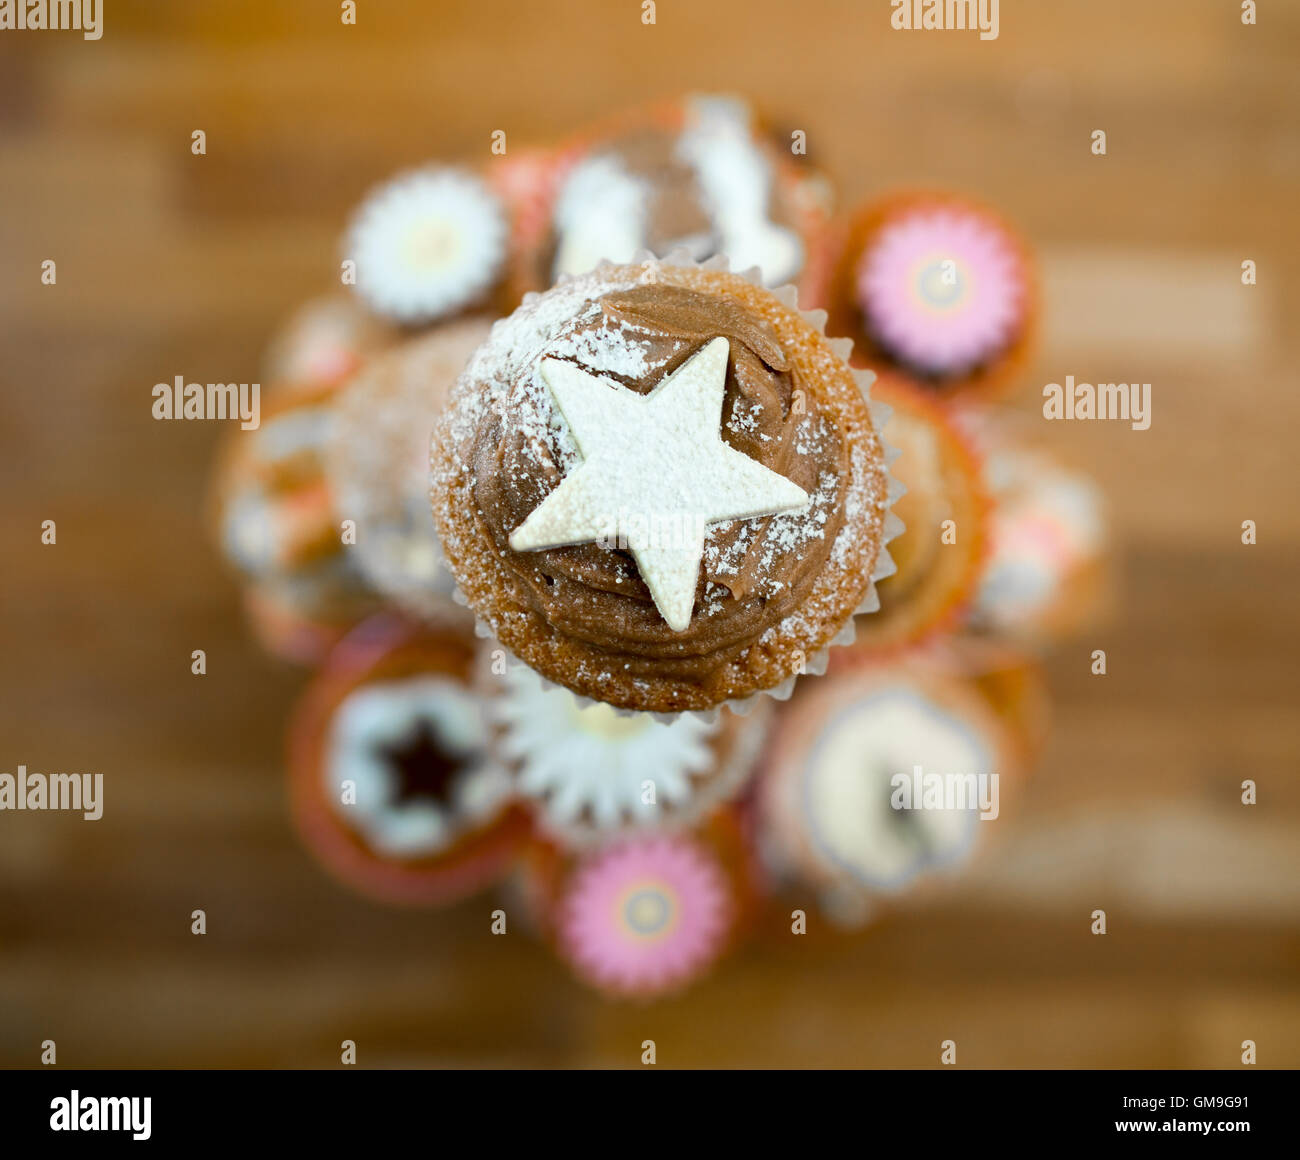 Decorated cupcakes on a display stand. - Stock Image